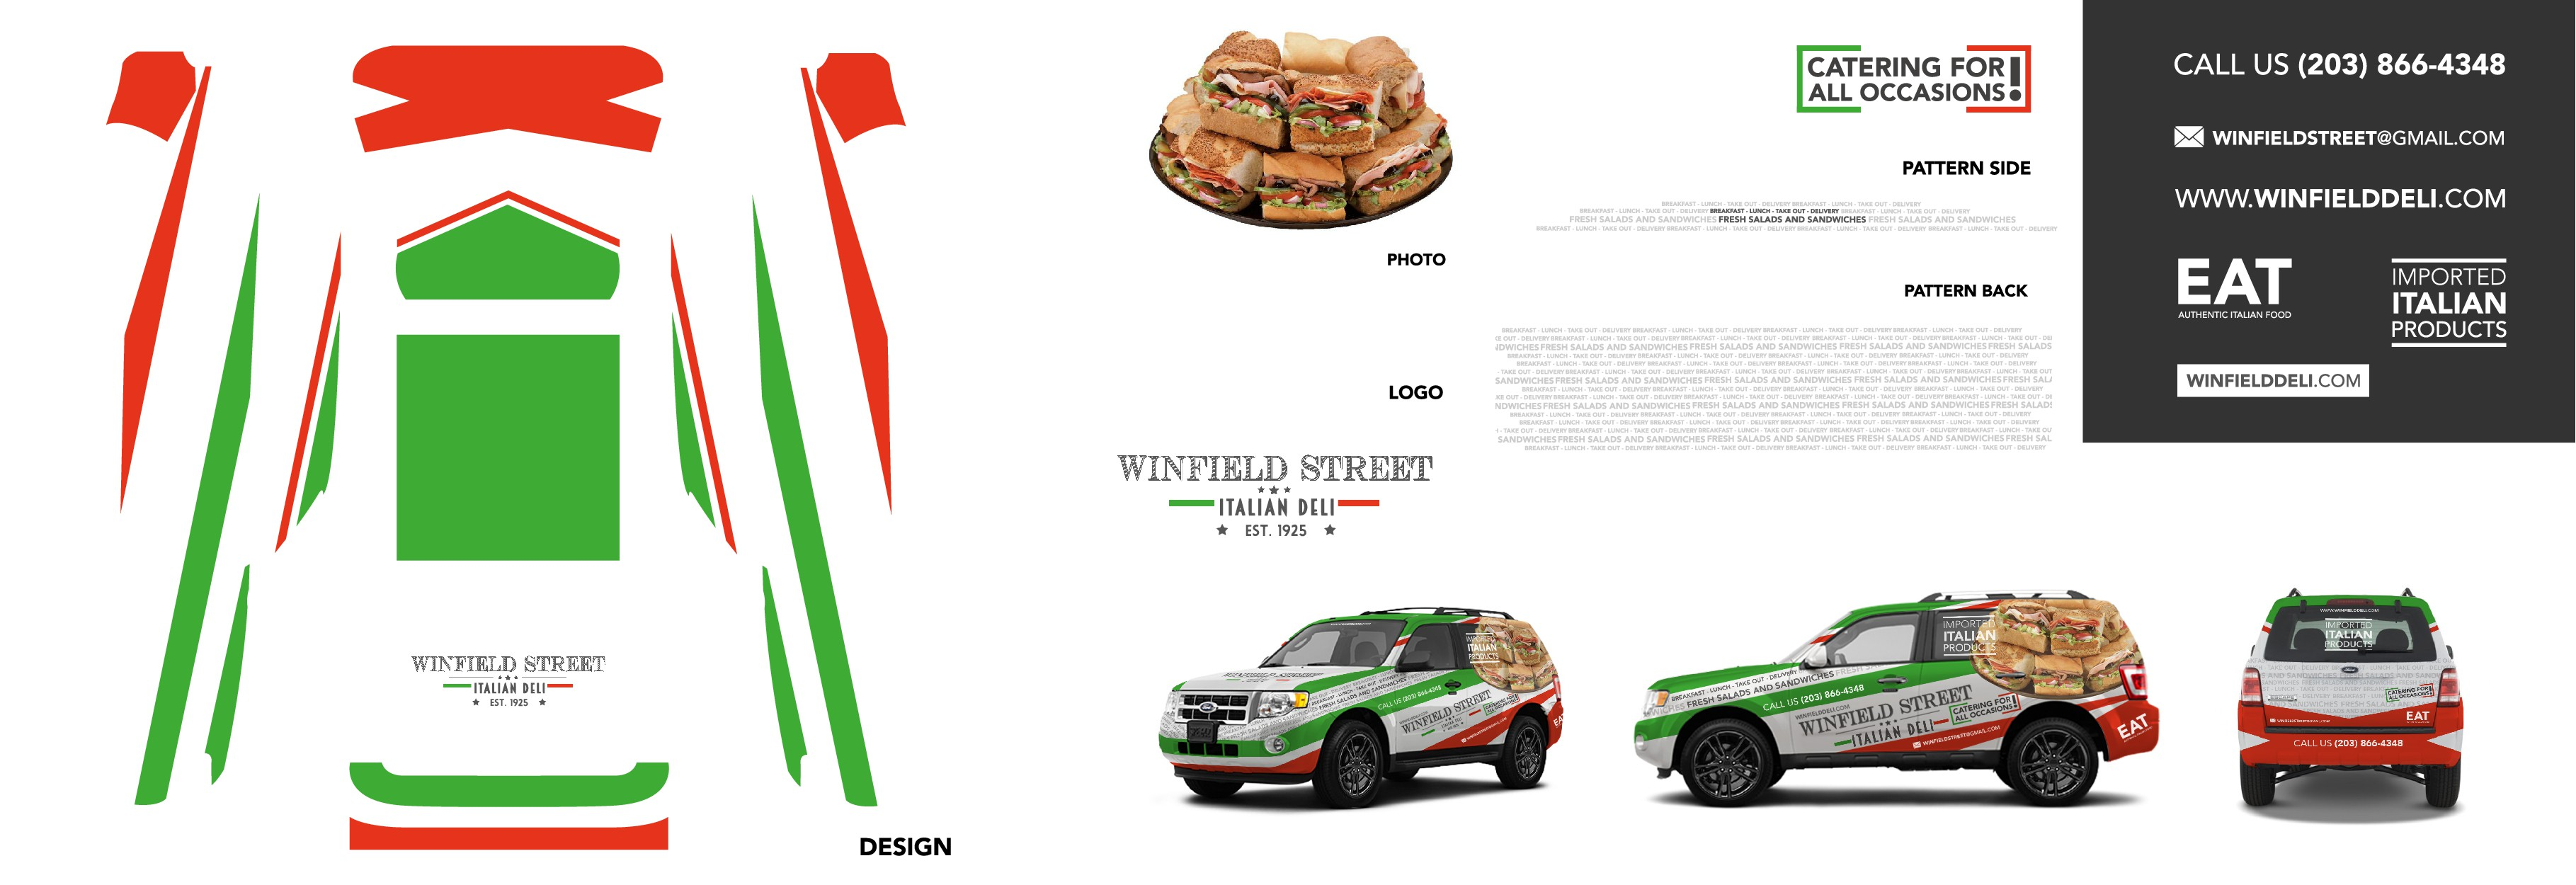 Fun Easy ITALIAN Car Wrapping for Italian Deli Catering and promotion!!! We need your expertise!